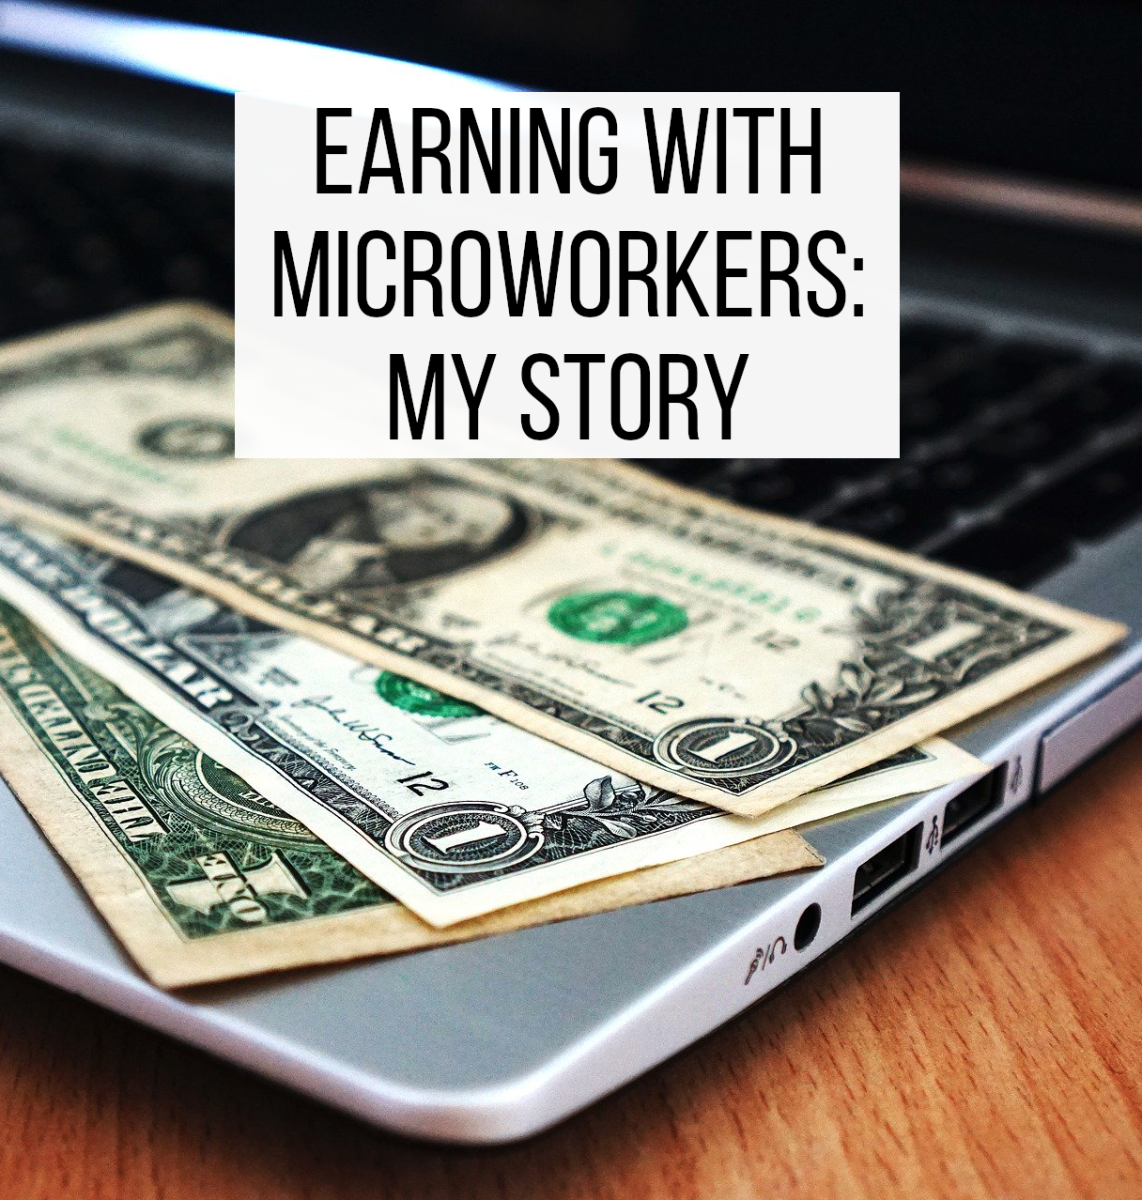 My Experience of Earning Online With Microworkers